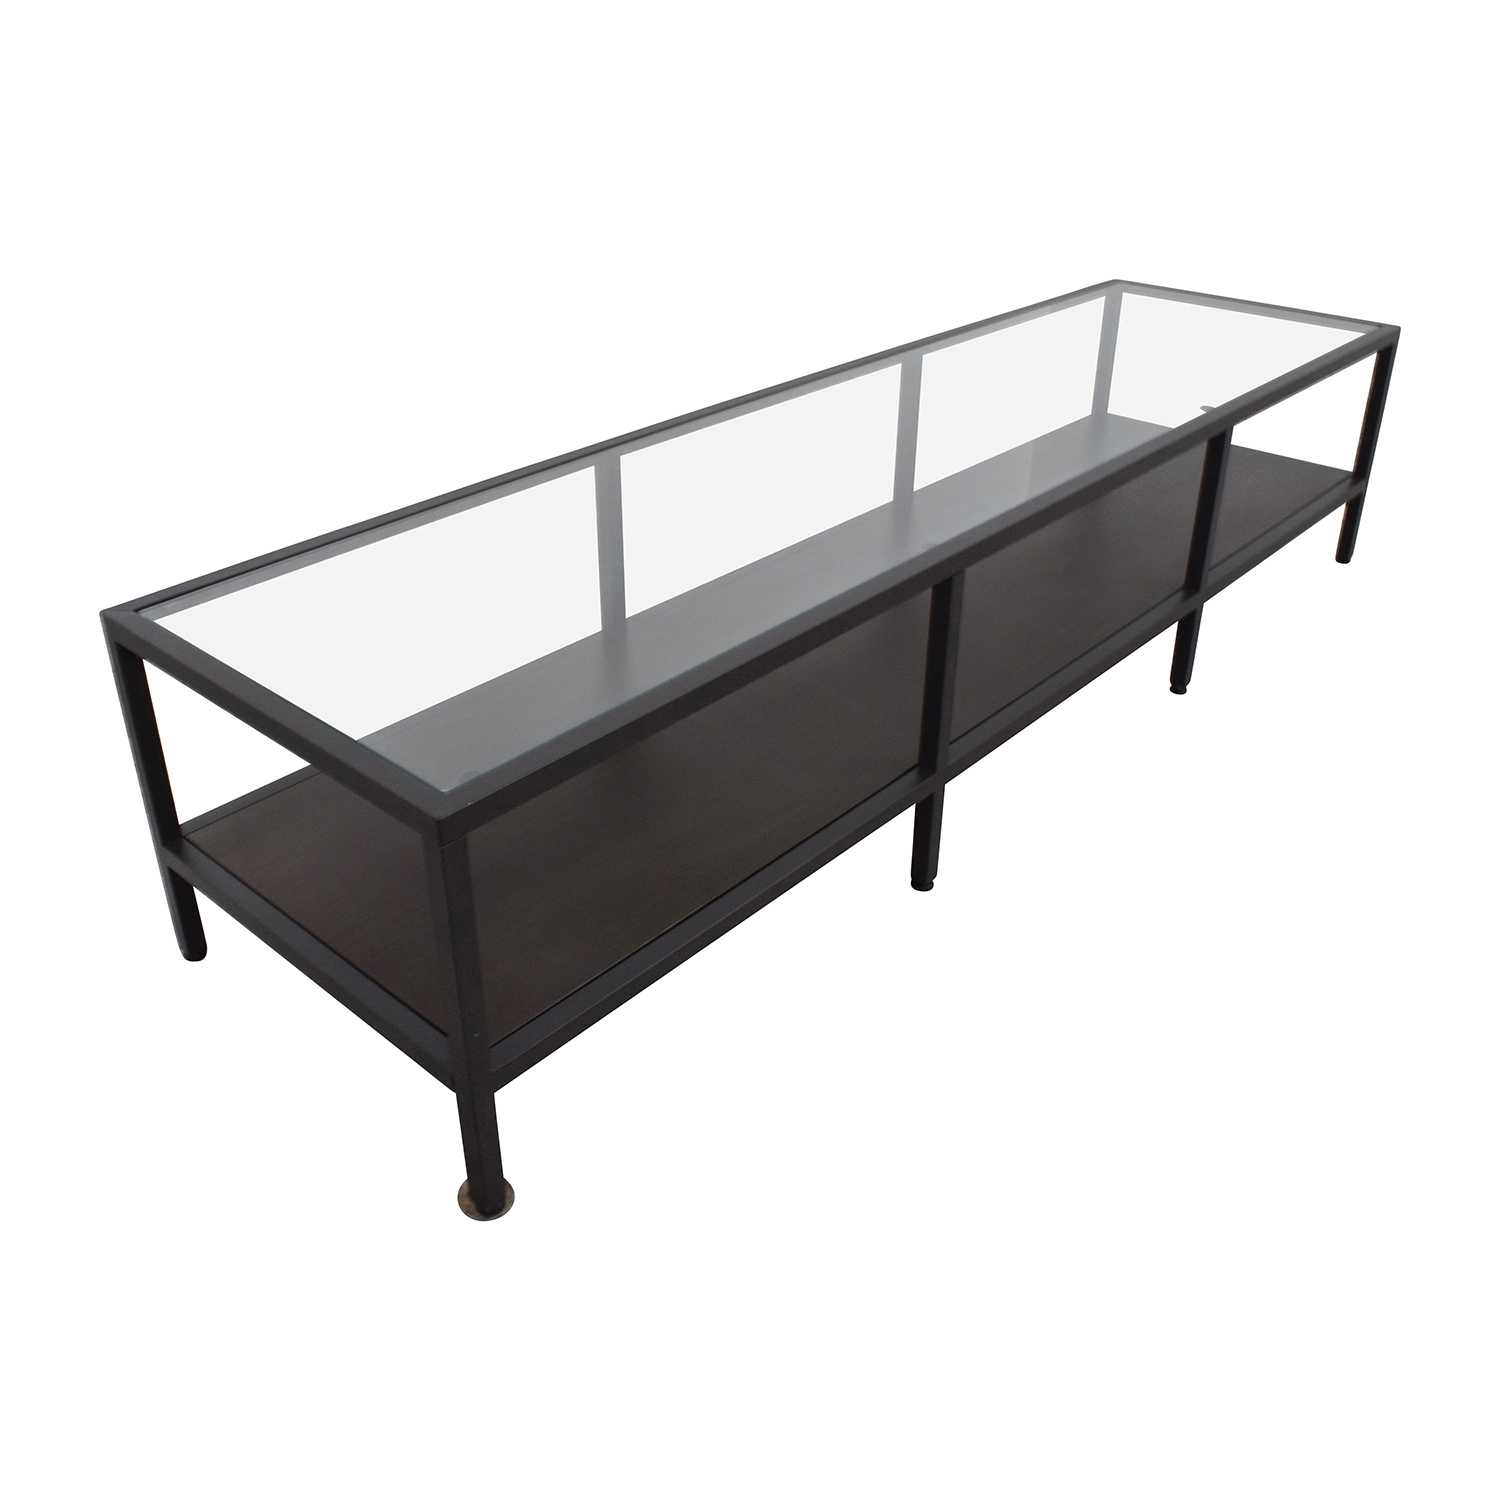 30 off ikea ikea metal glass coffee table media unit for Ikea glass table tops